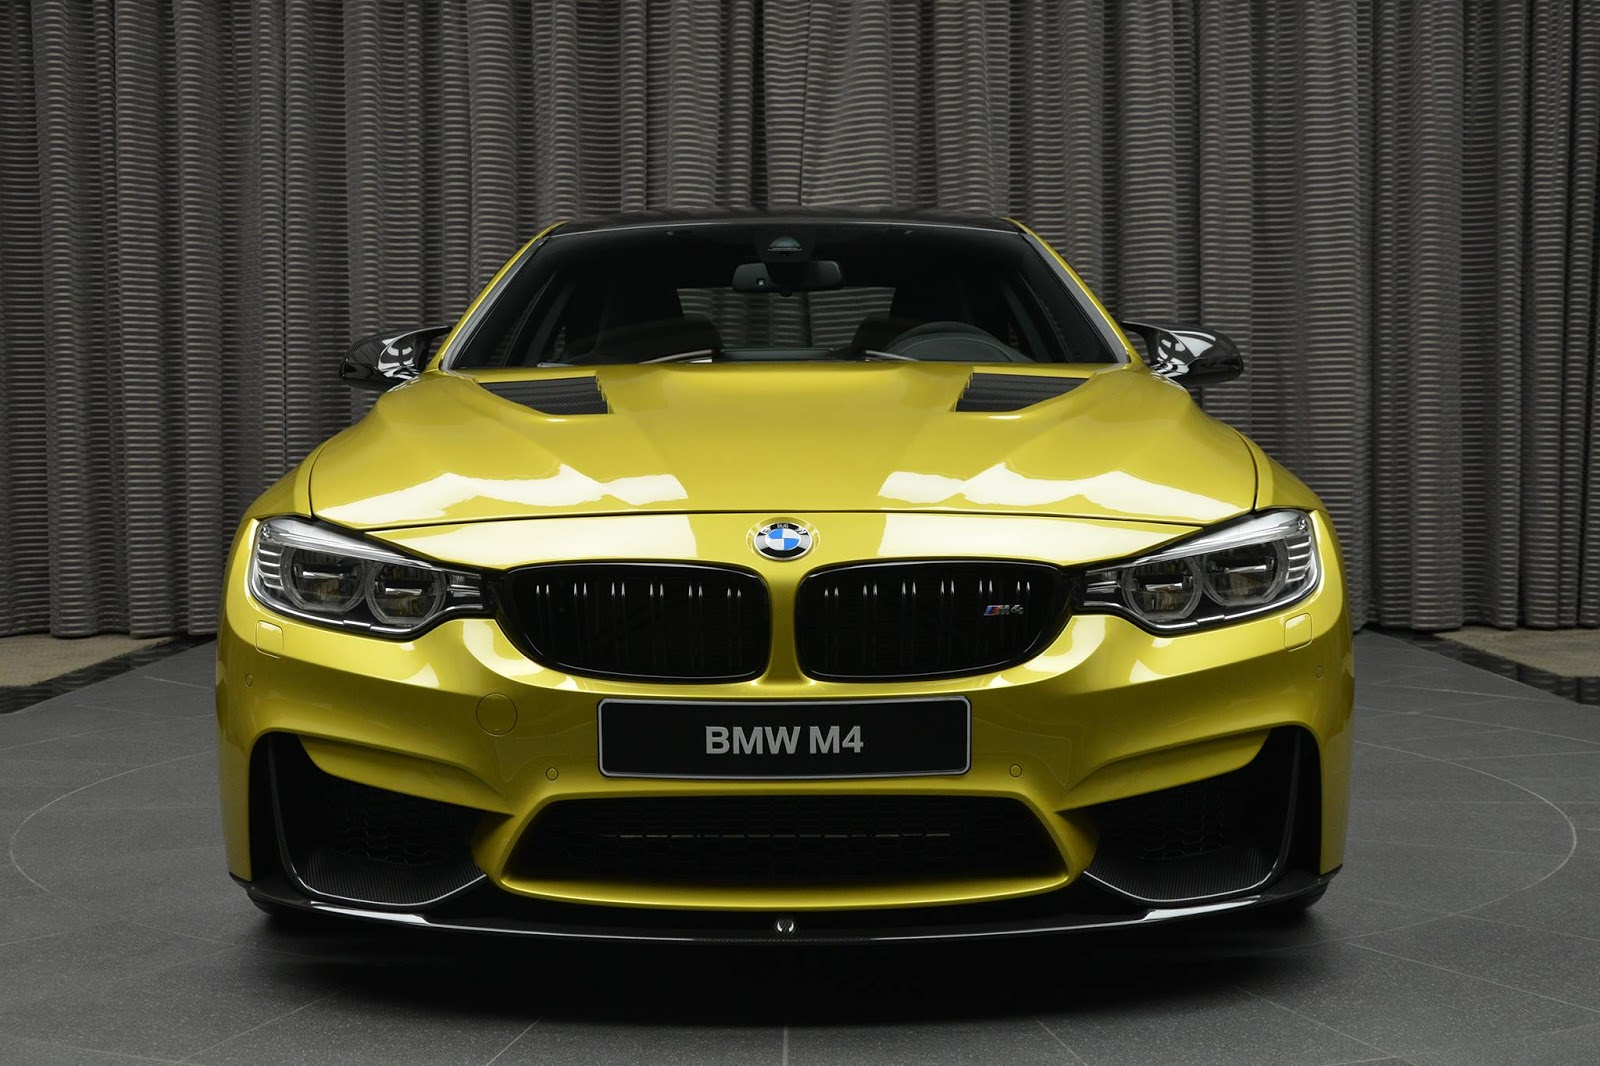 Austin Yellow BMW M4 Laden With M Performance Parts Is ...